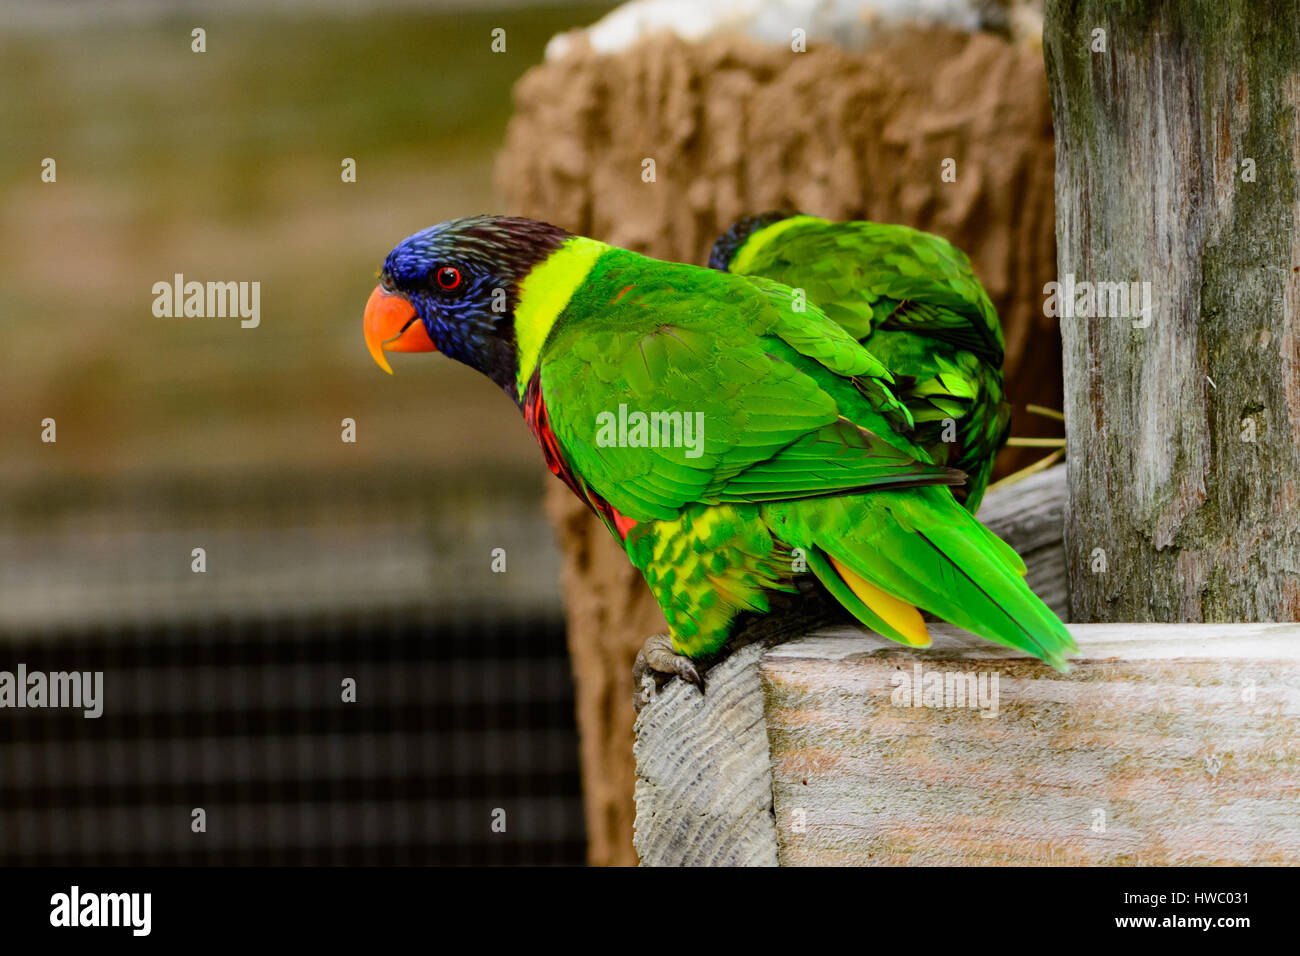 Rainbow lori (Trichoglossus moluccanus) perched in enclosure. Colorful, curious, clever birds. - Stock Image